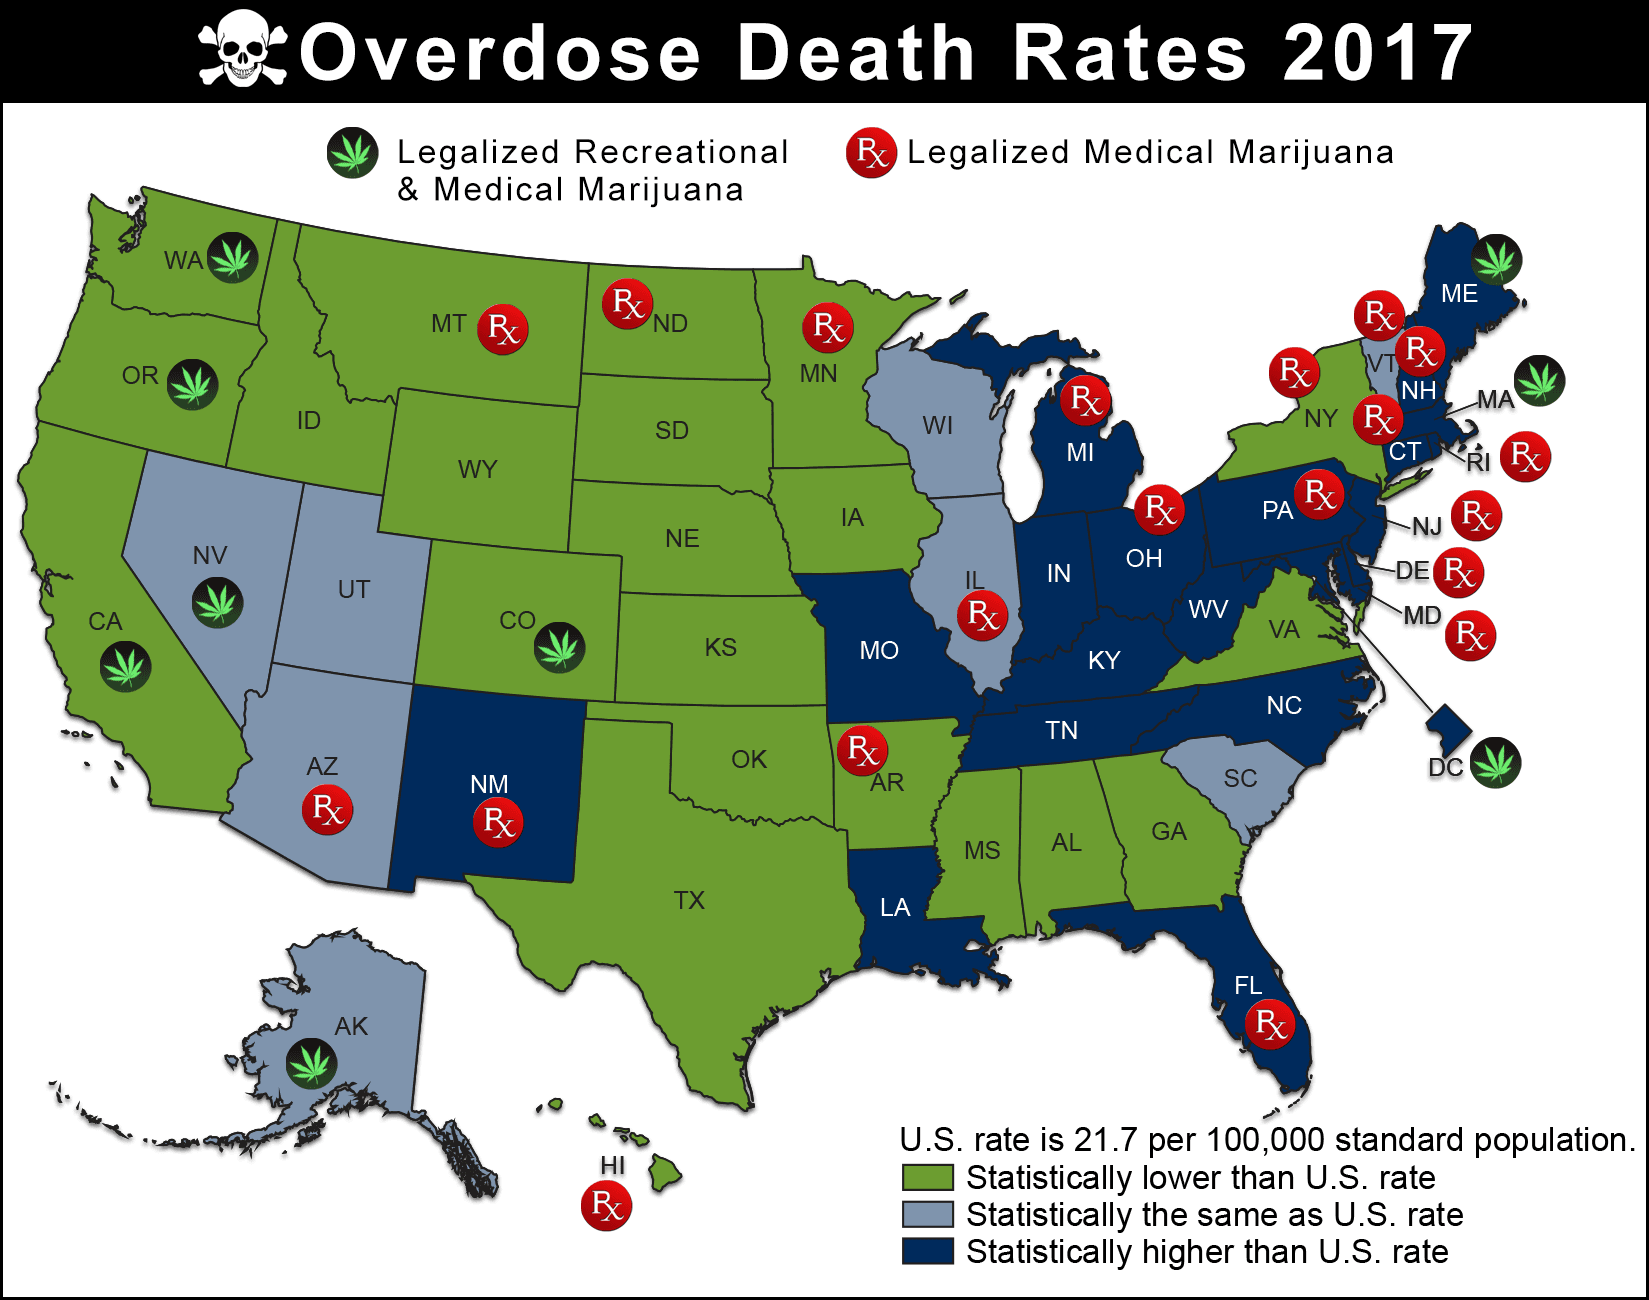 Map Depiciting Overdose Death Rates By State